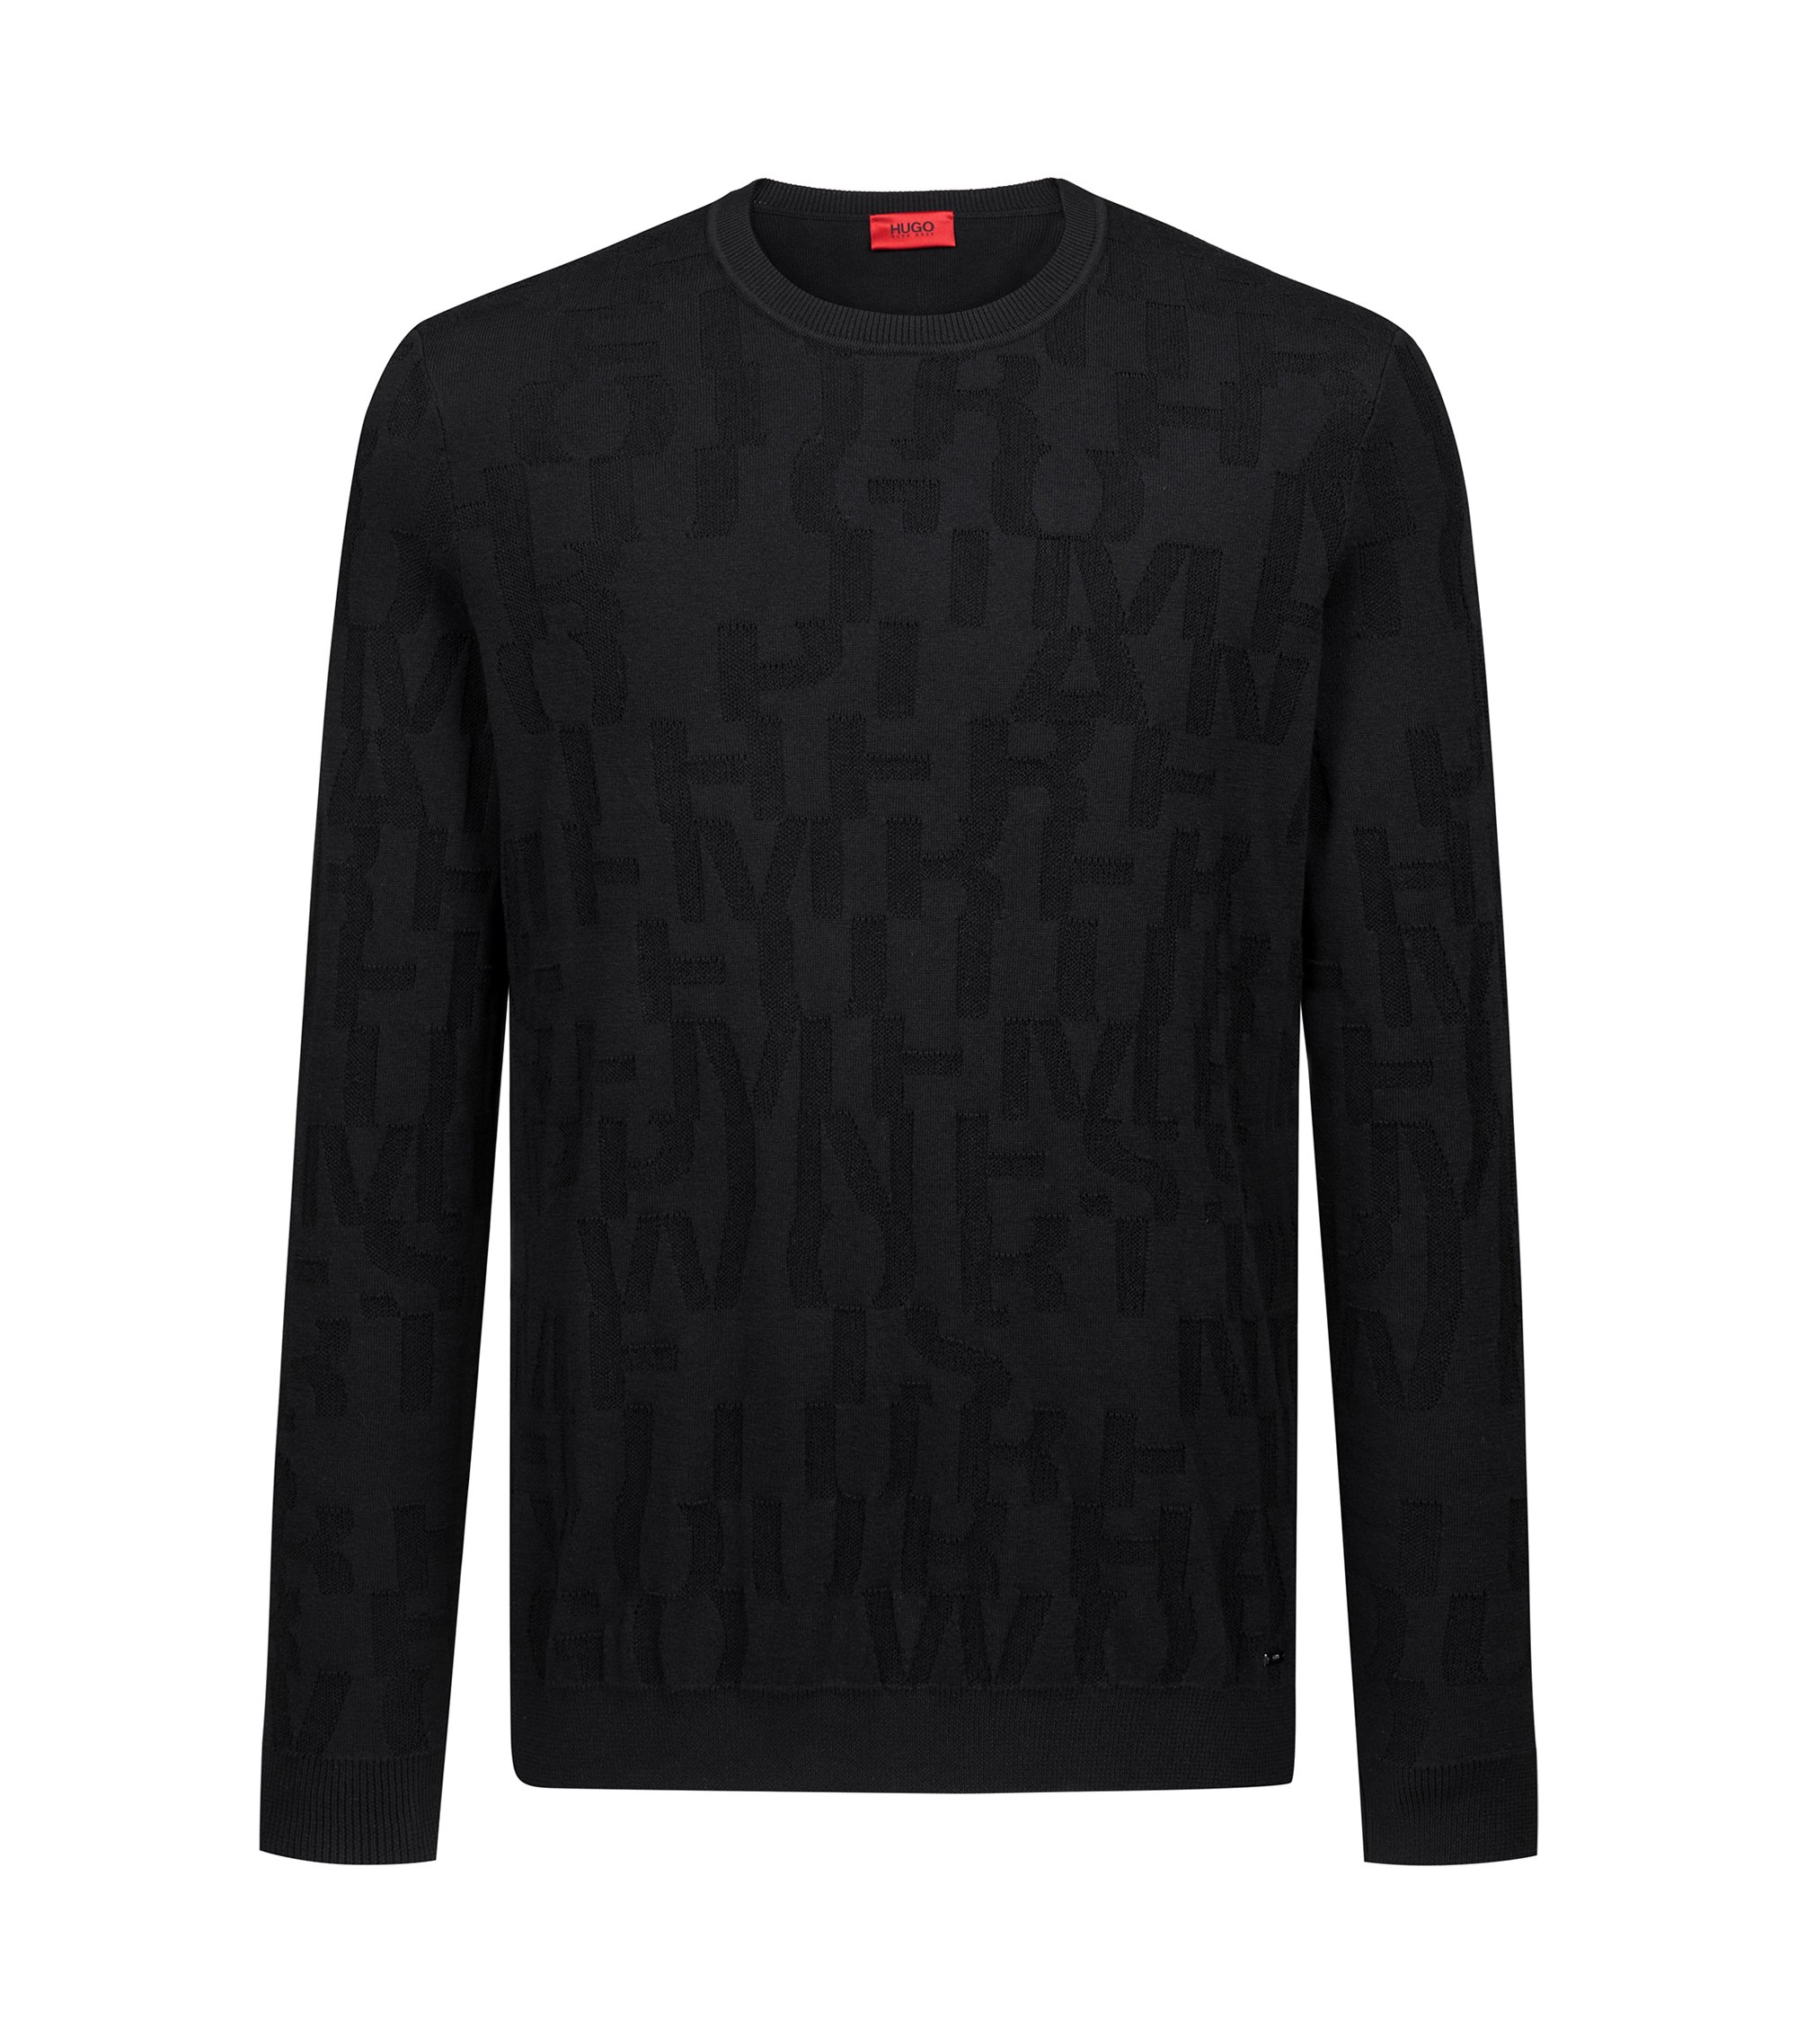 Knitted sweater in cotton jacquard with slogan design, Black